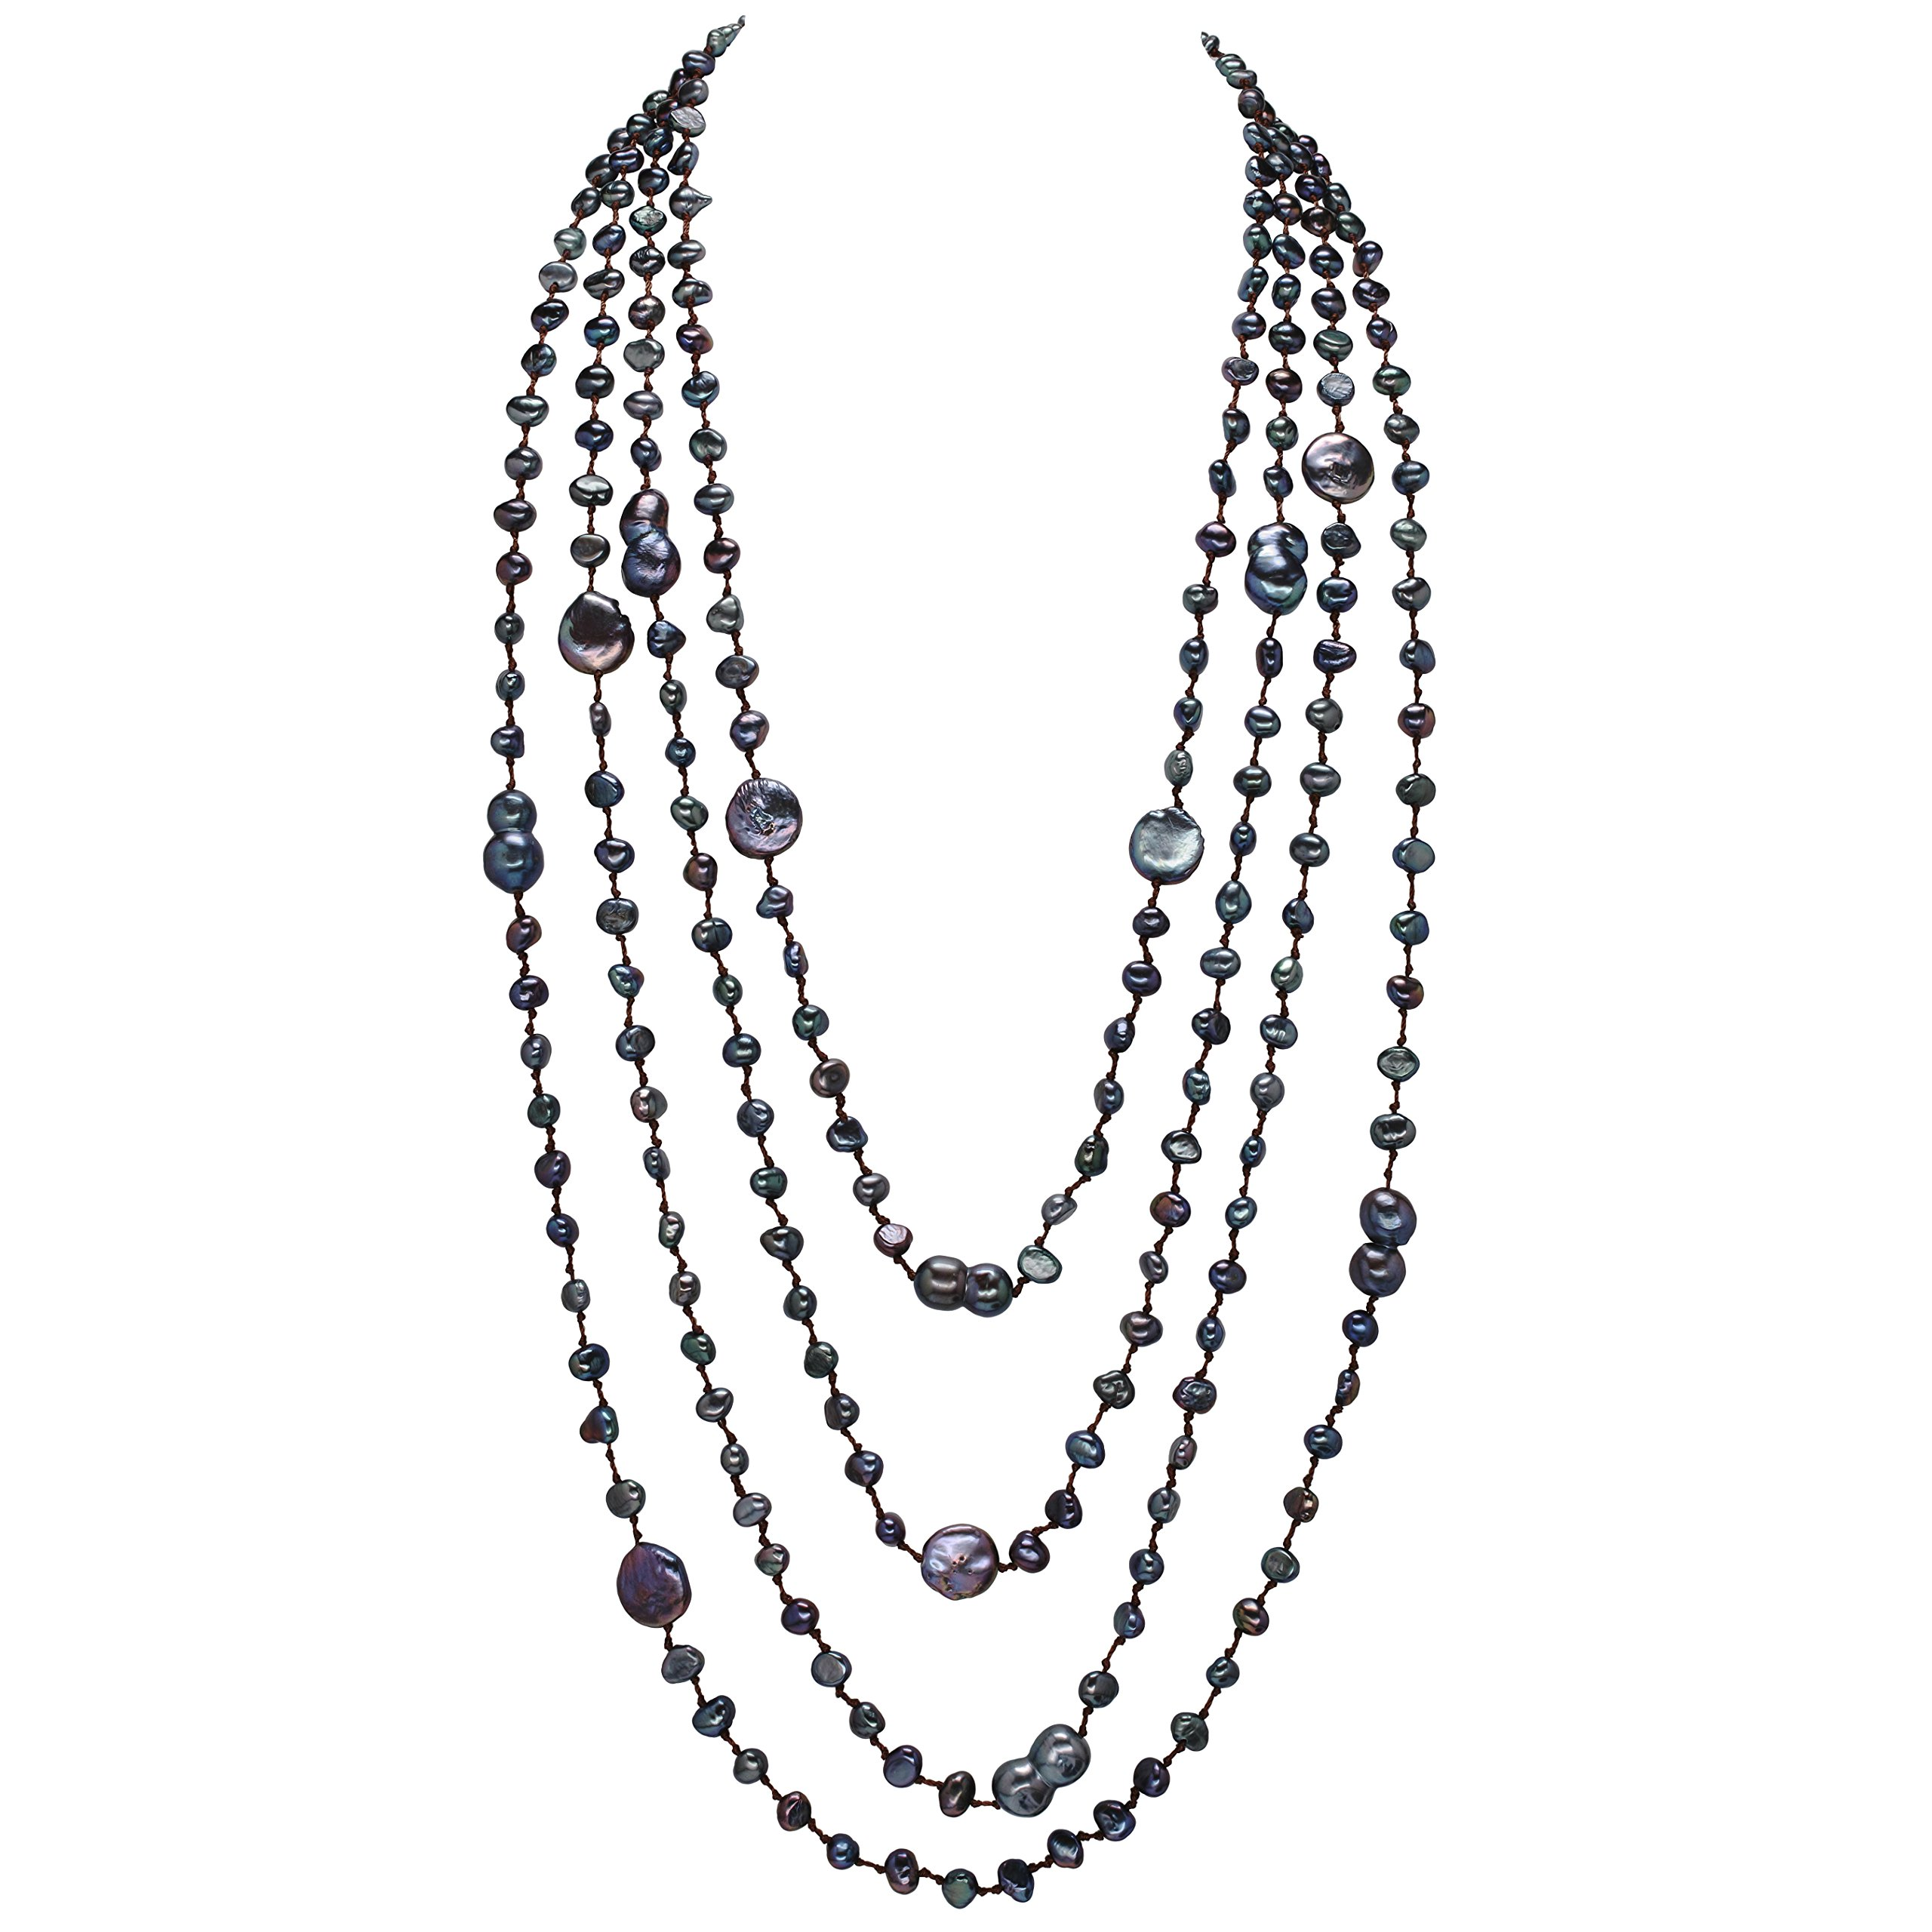 HinsonGayle 'Selena' 4-Strand Ultra-Iridescent Multicolored Black Freshwater Cultured Pearl Necklace-32 in length